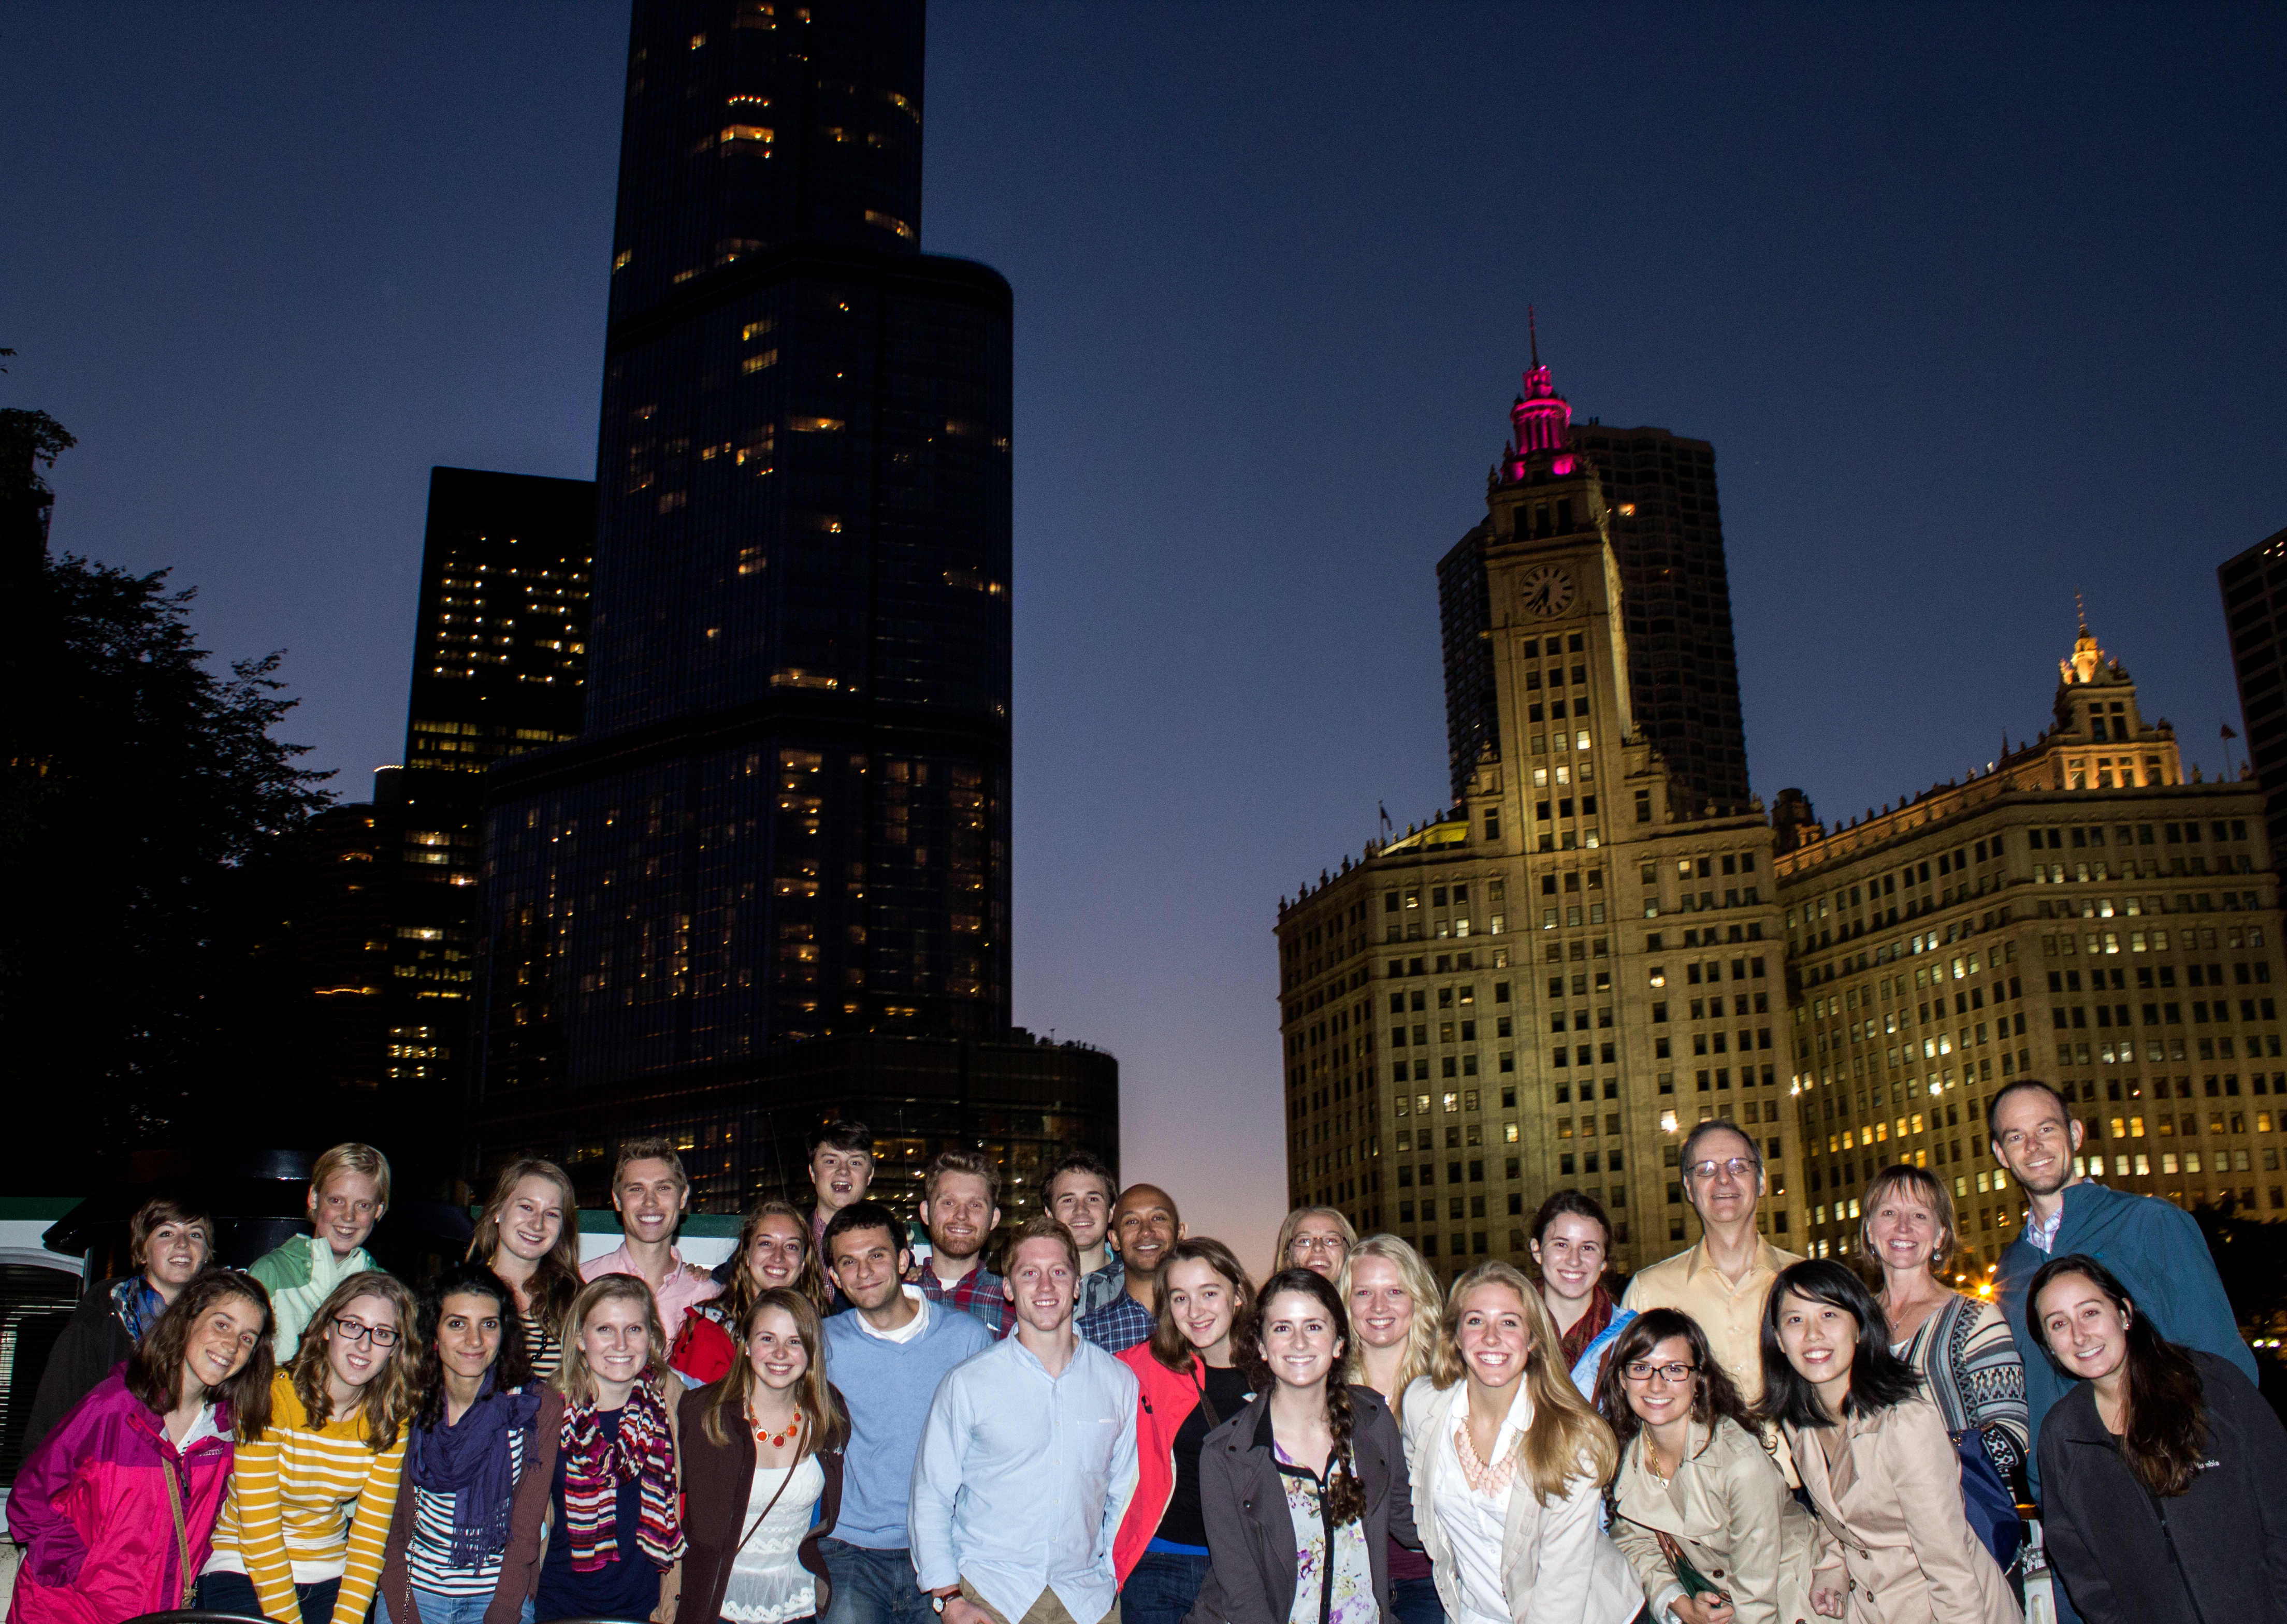 Oles and Piper Center staff on the Chicago Connections program in 2013